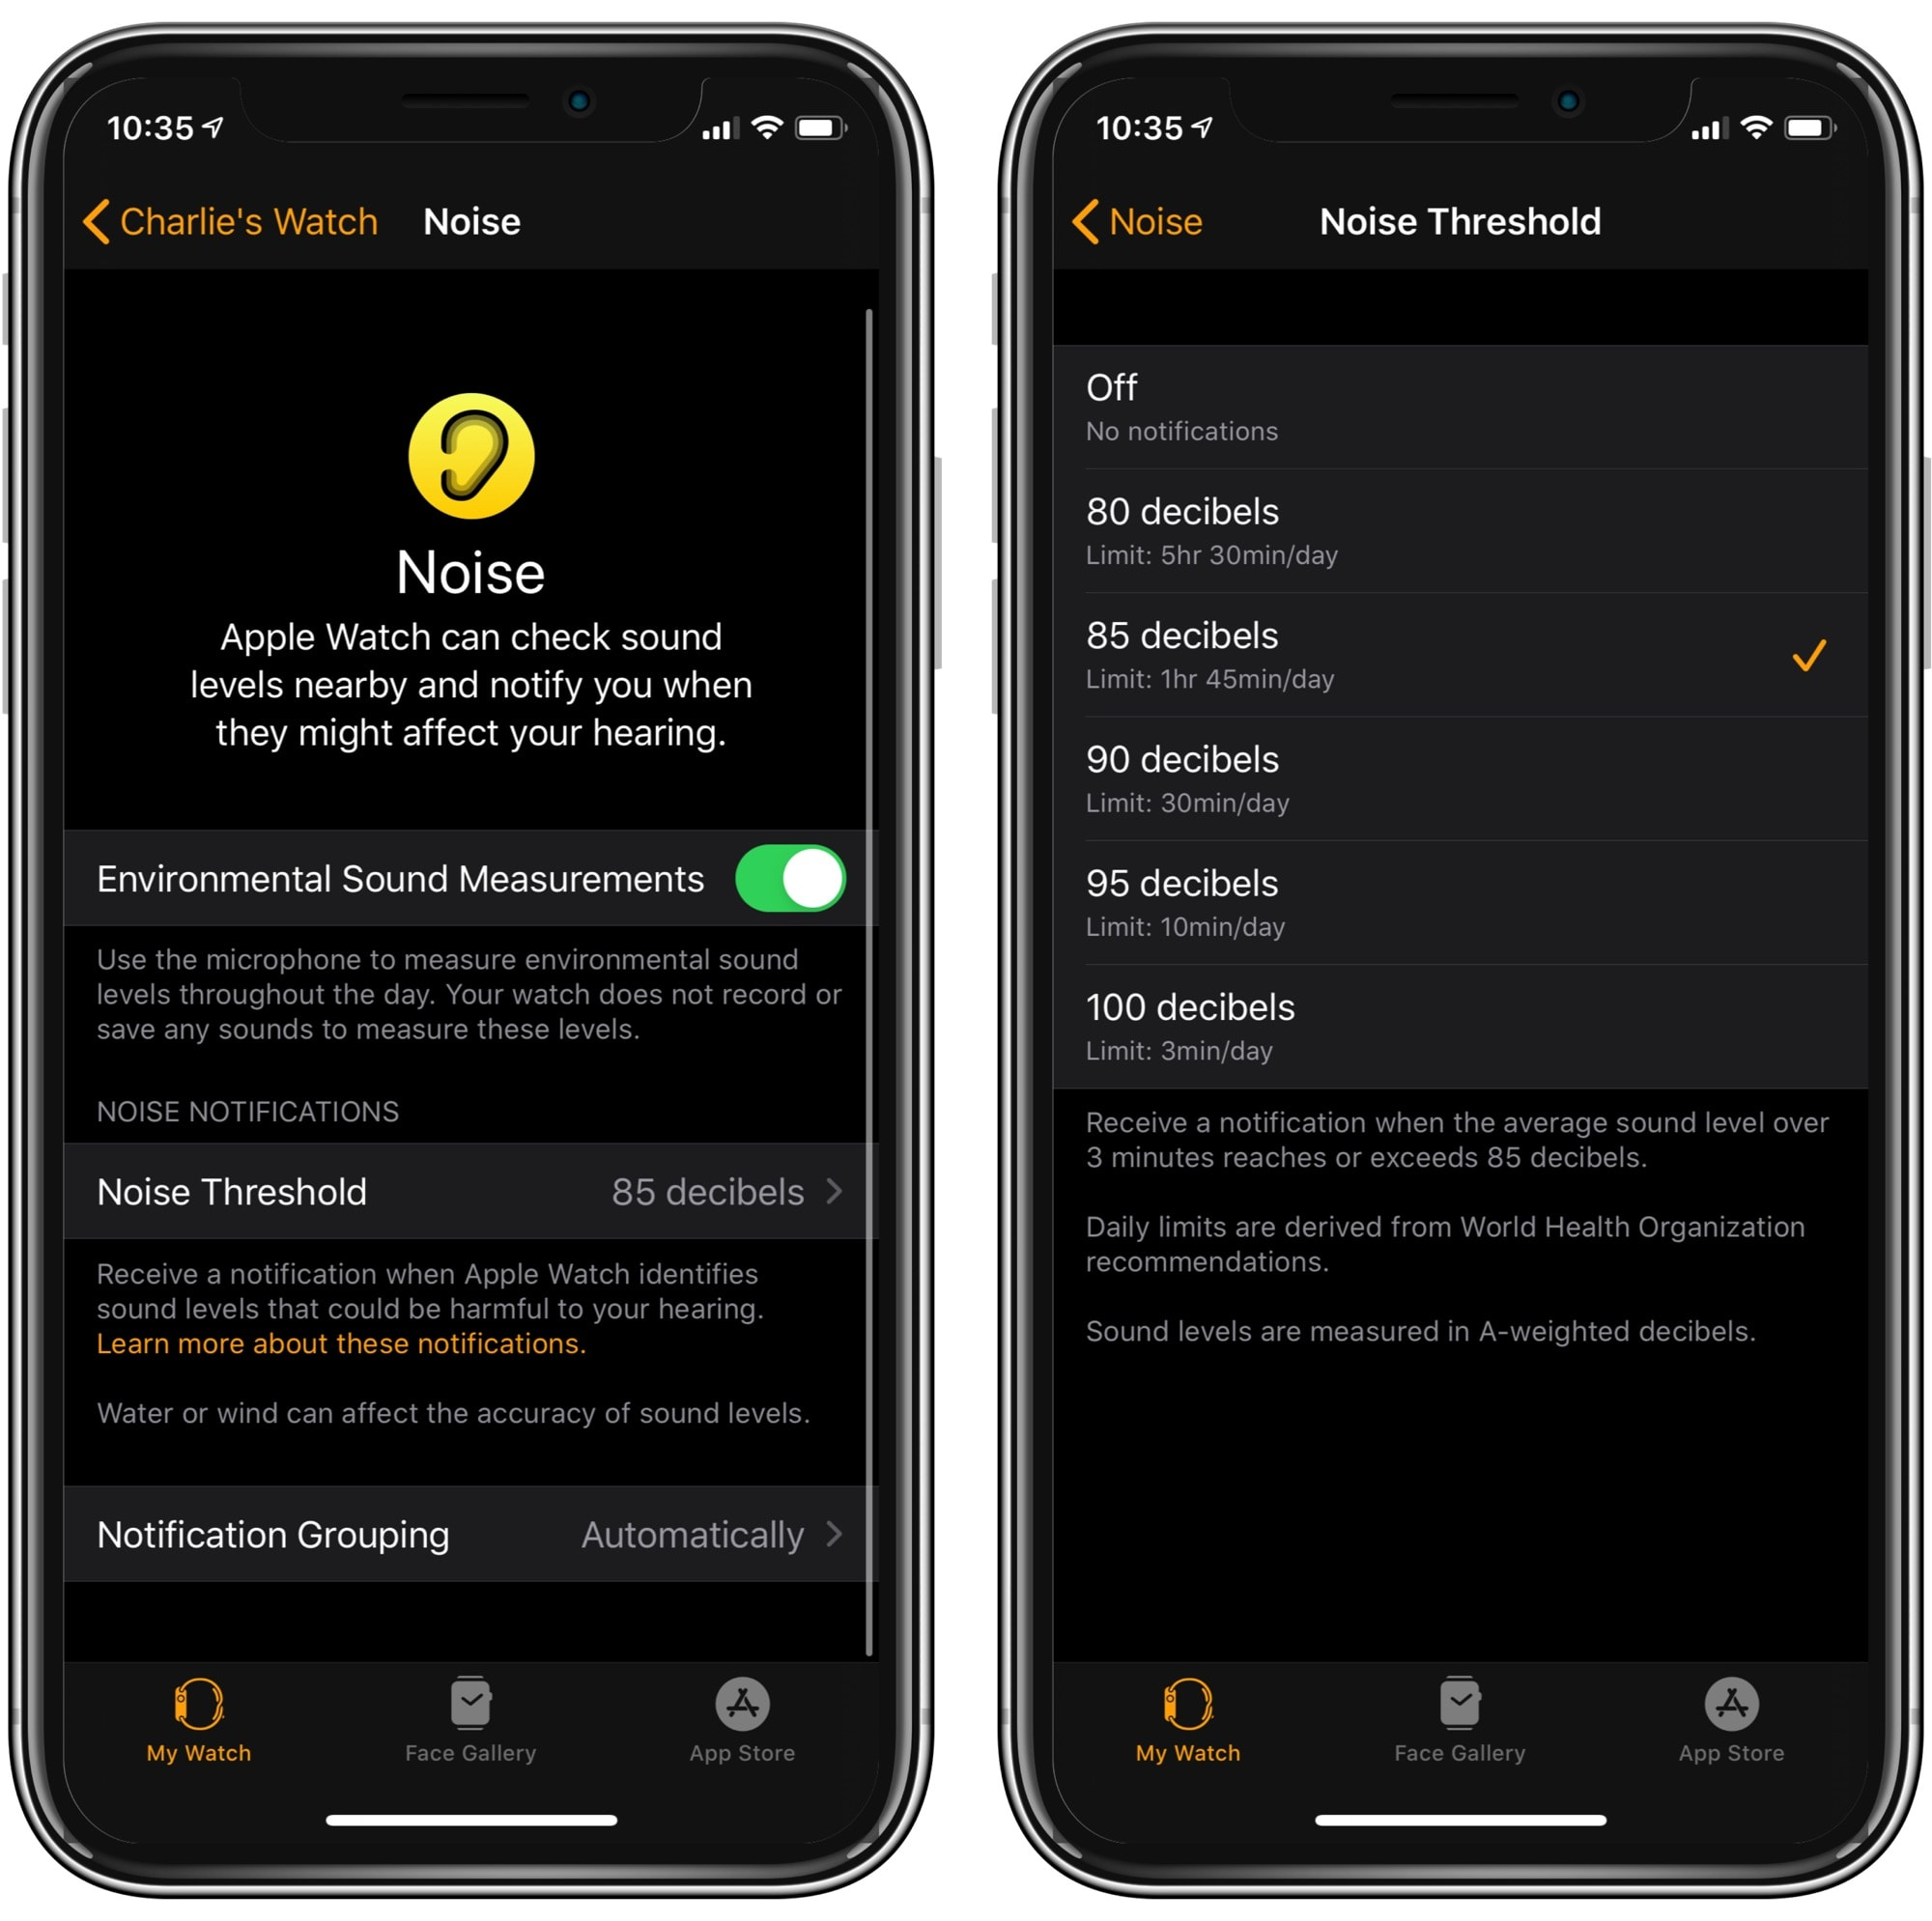 Apple Watch's Noise settings on your iPhone.